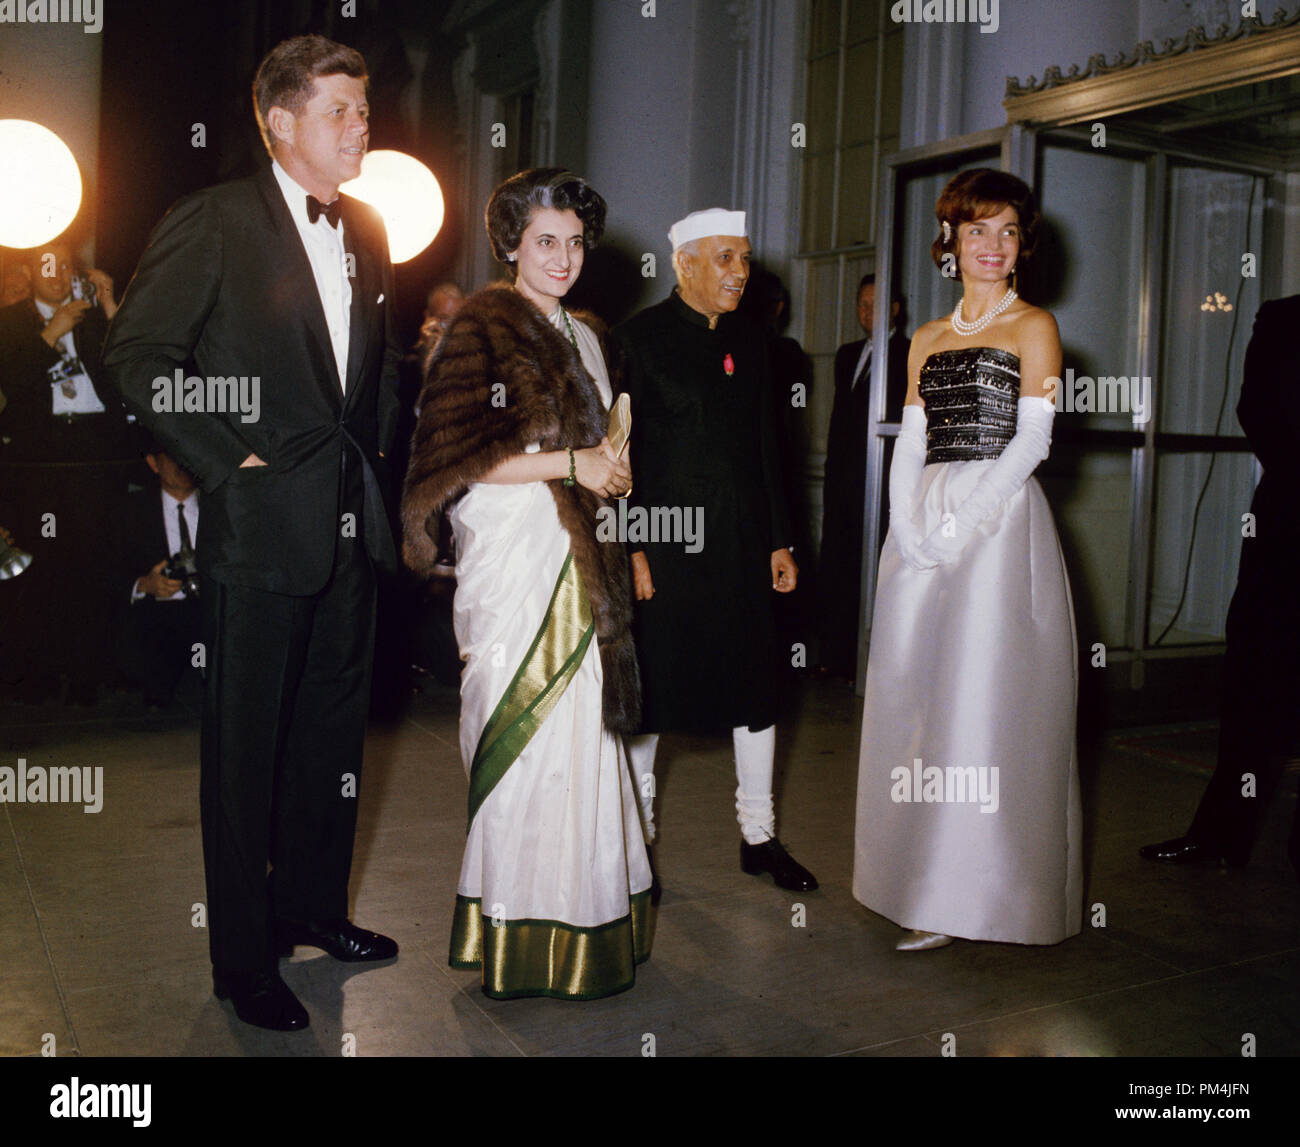 President John F. Kennedy with his wife Jacqueline, Indian prime minister Jawaharlal Nehru and Nehru's daughter Indira Gandhi, November 1961.   File Reference # 1003_705THA - Stock Image